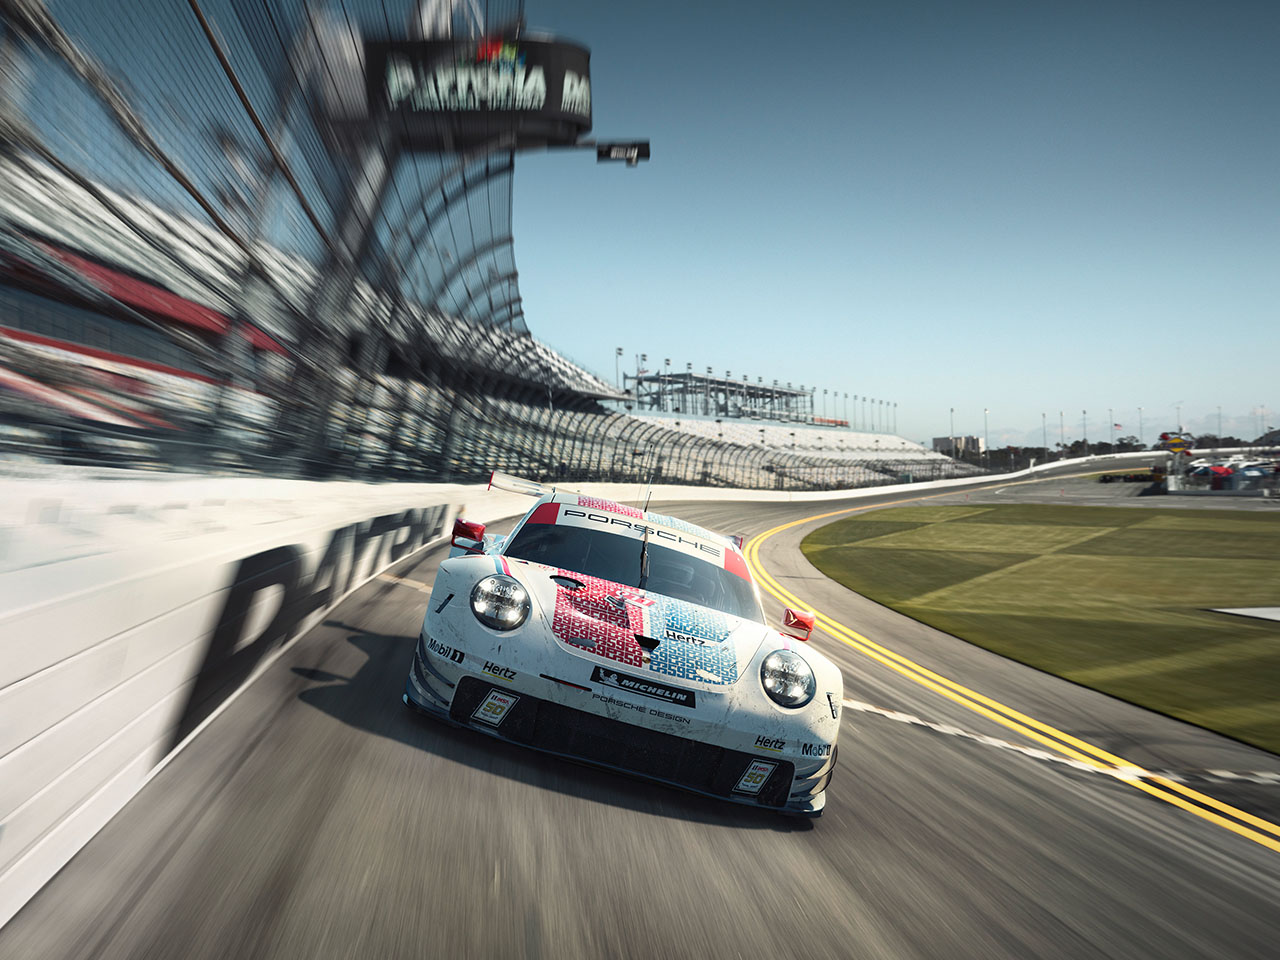 Porsche 24h of Daytona. A long night in Florida